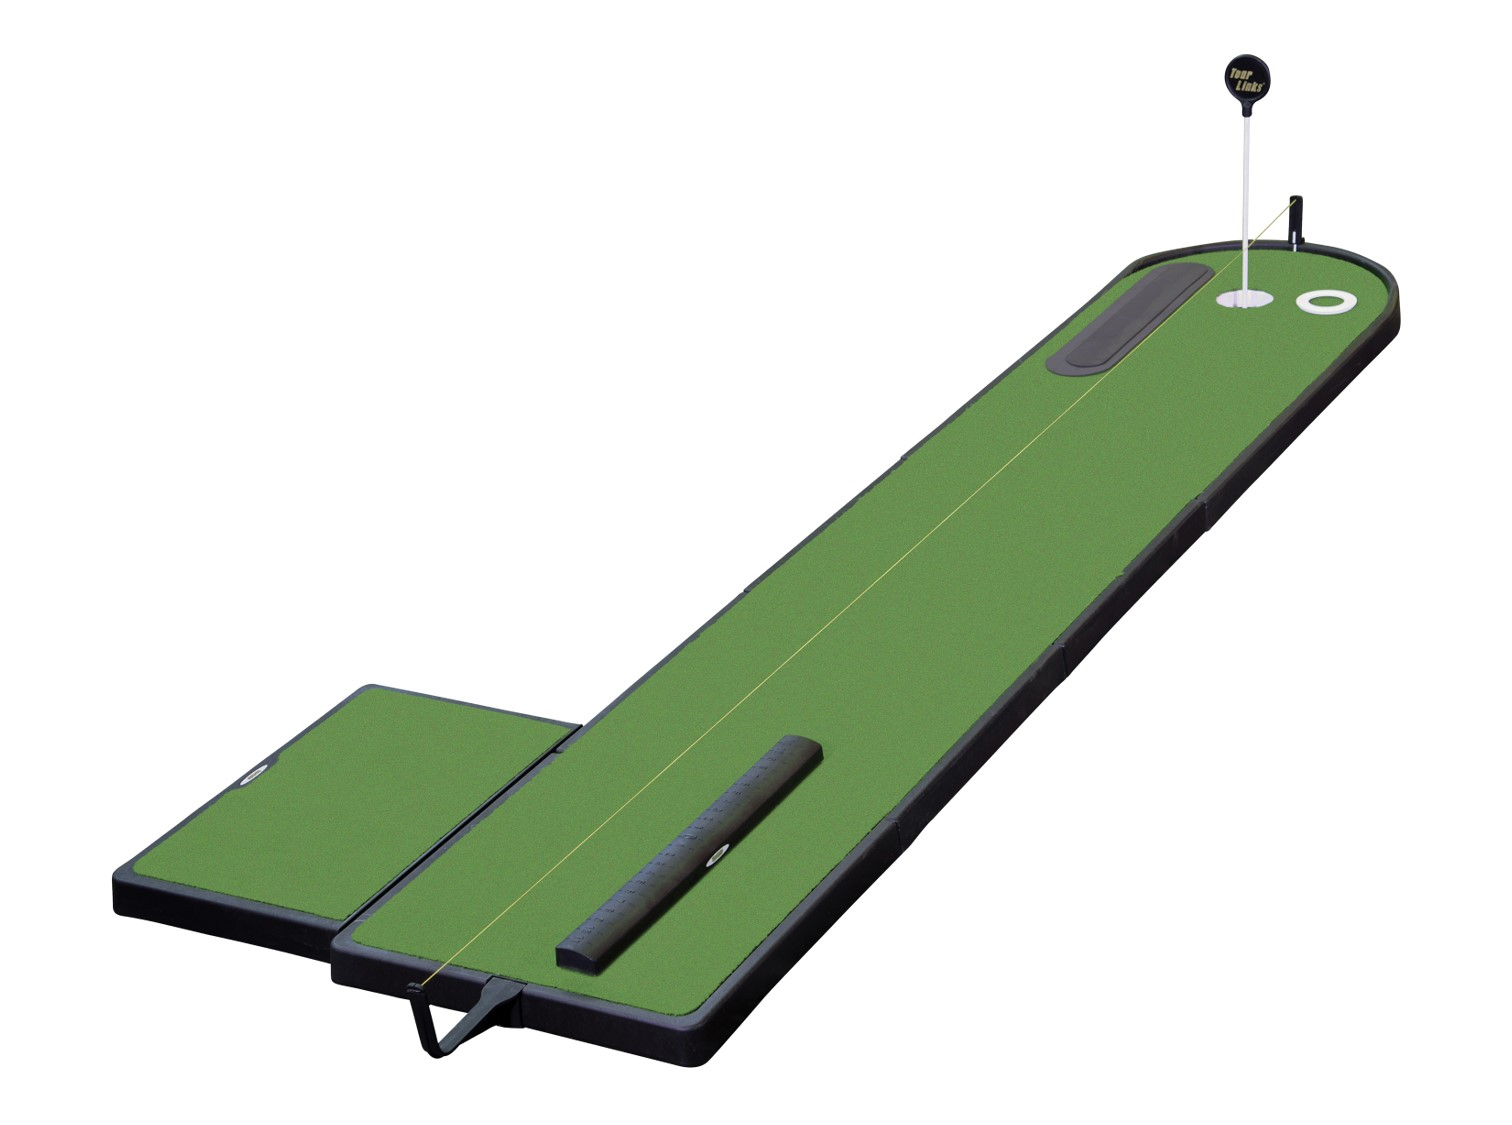 9 Foot Training Aid Putting Green